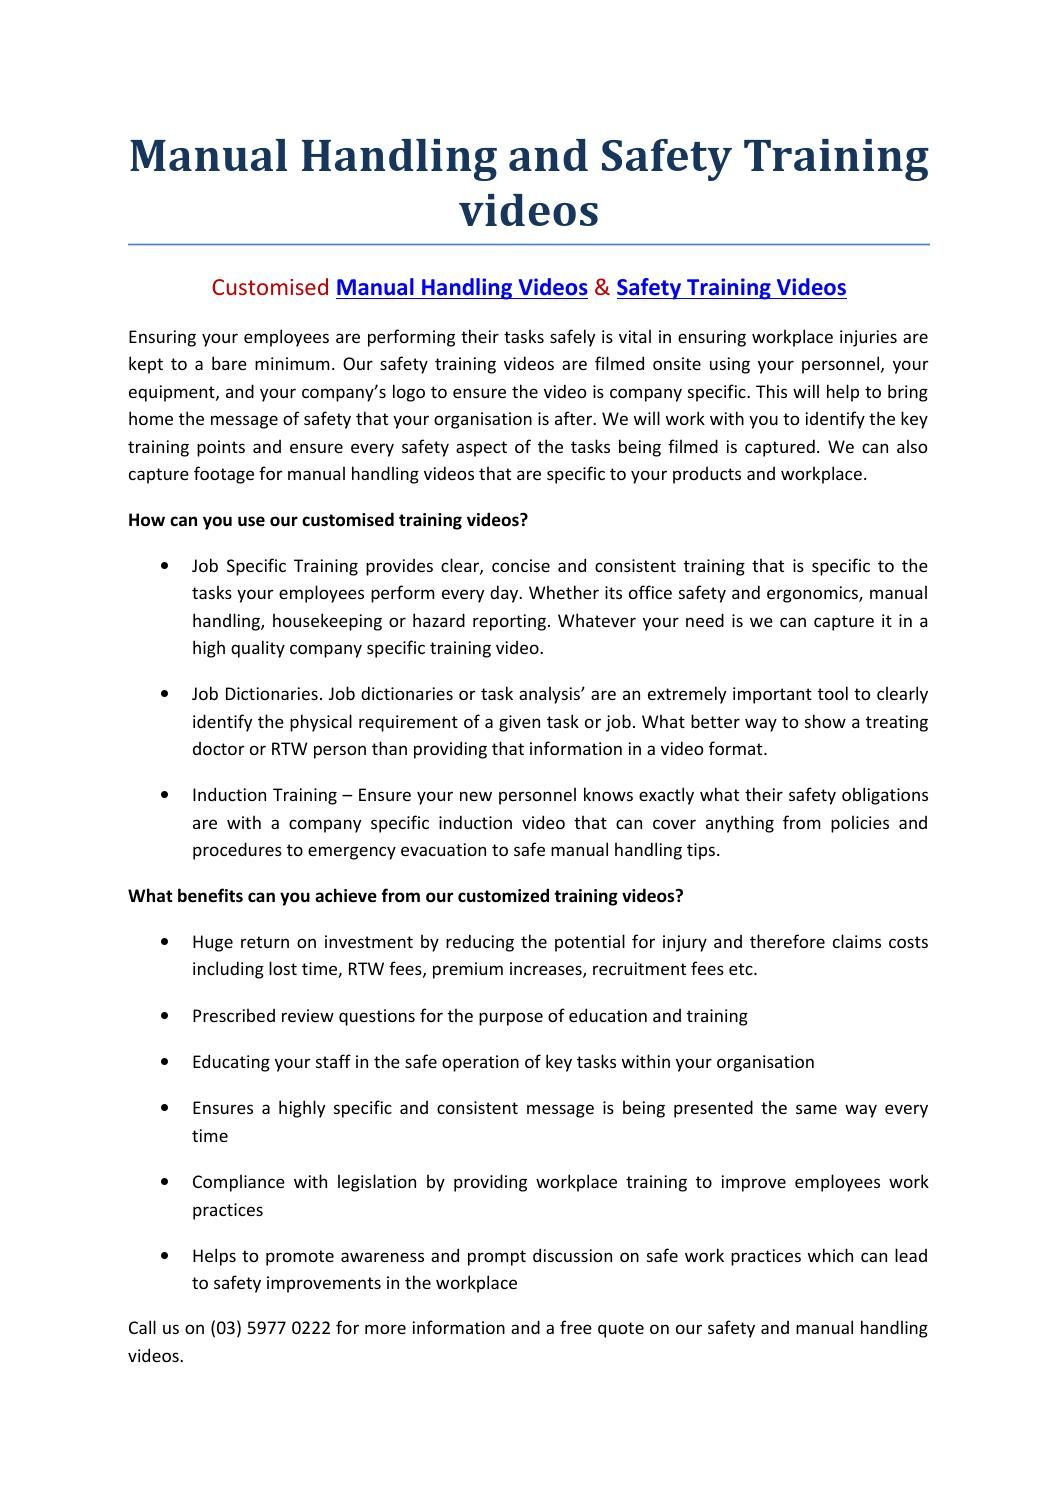 Manual Handling And Safety Training Videos Manual Handling